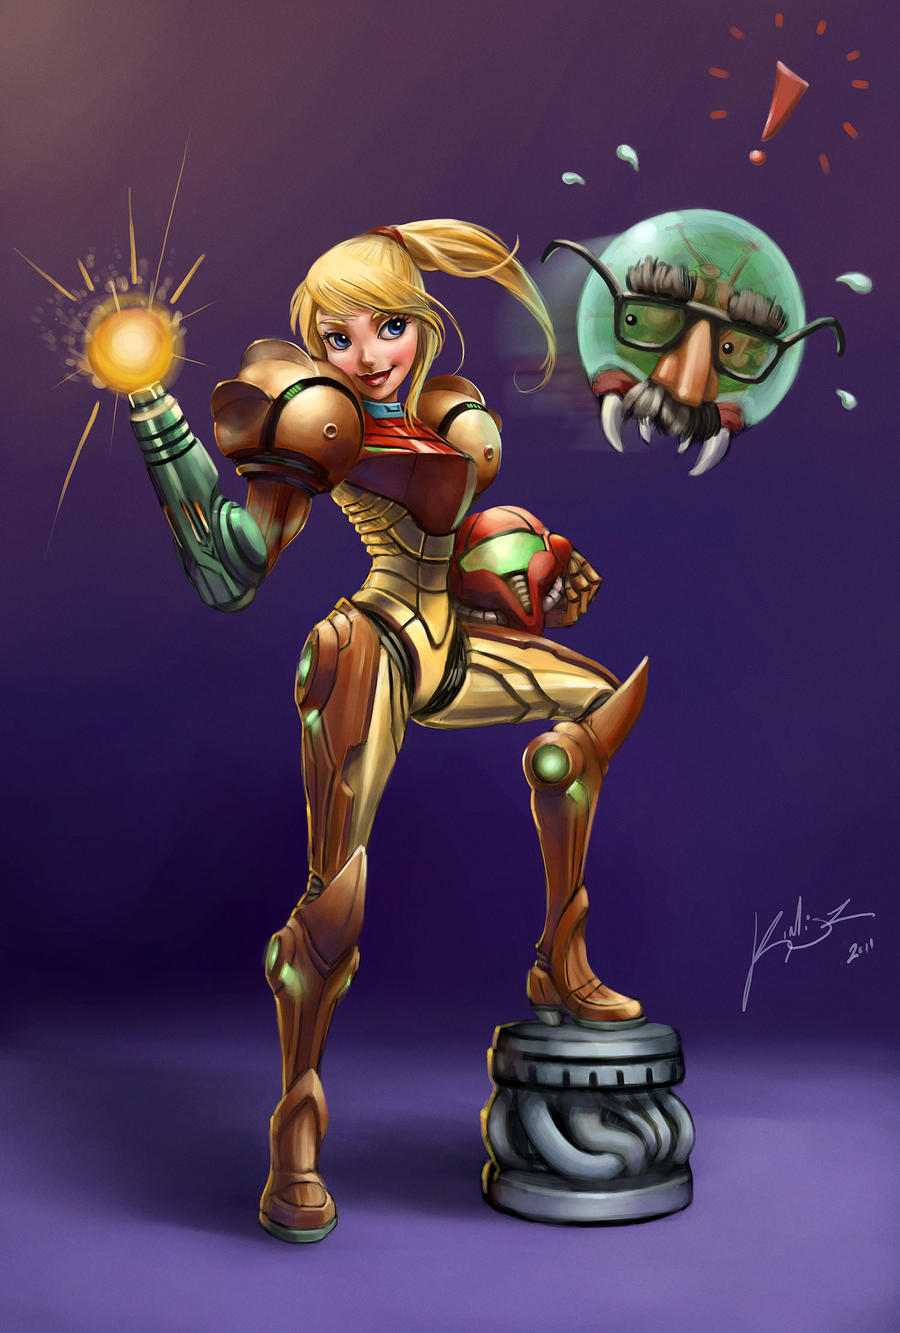 Samus Aran  Wikitroid  Fandom powered by Wikia Nude comics of samus aran